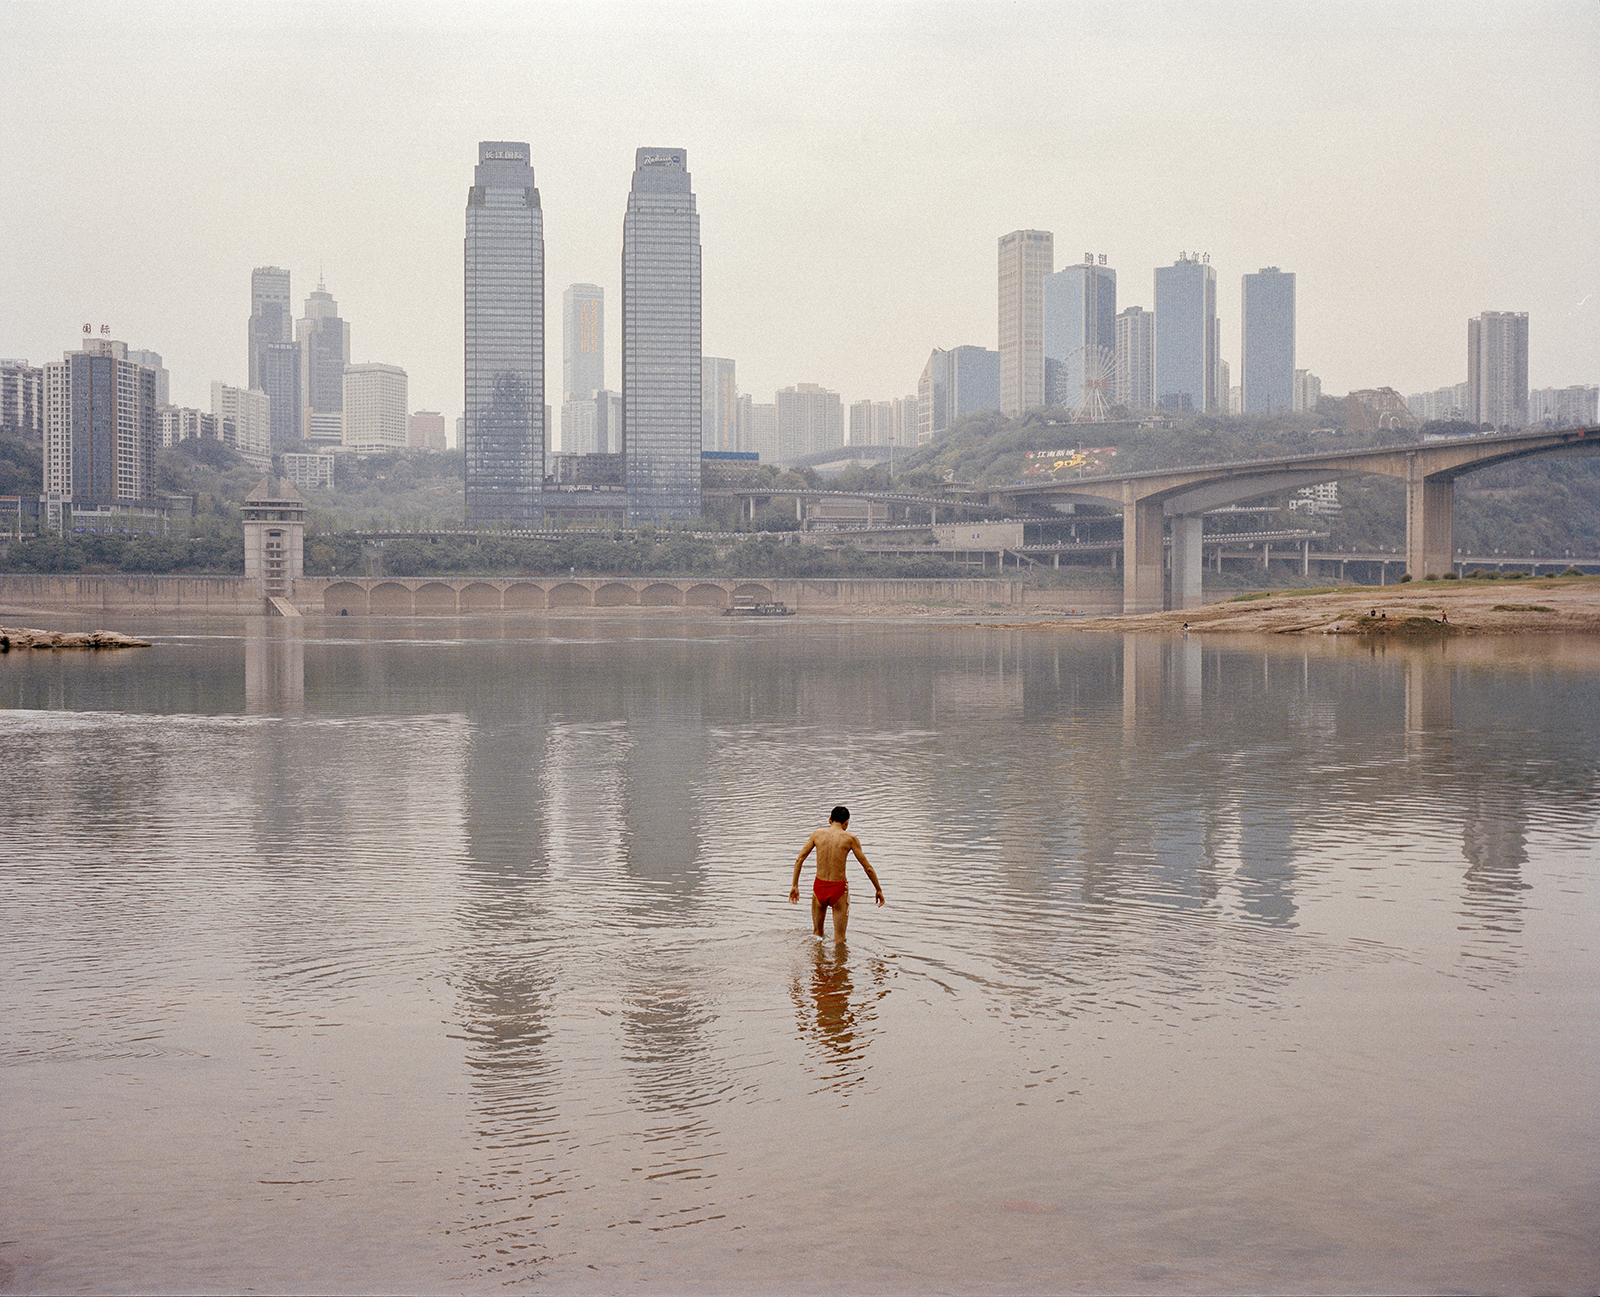 The Yangtze River. Chongqing, China, 2015.